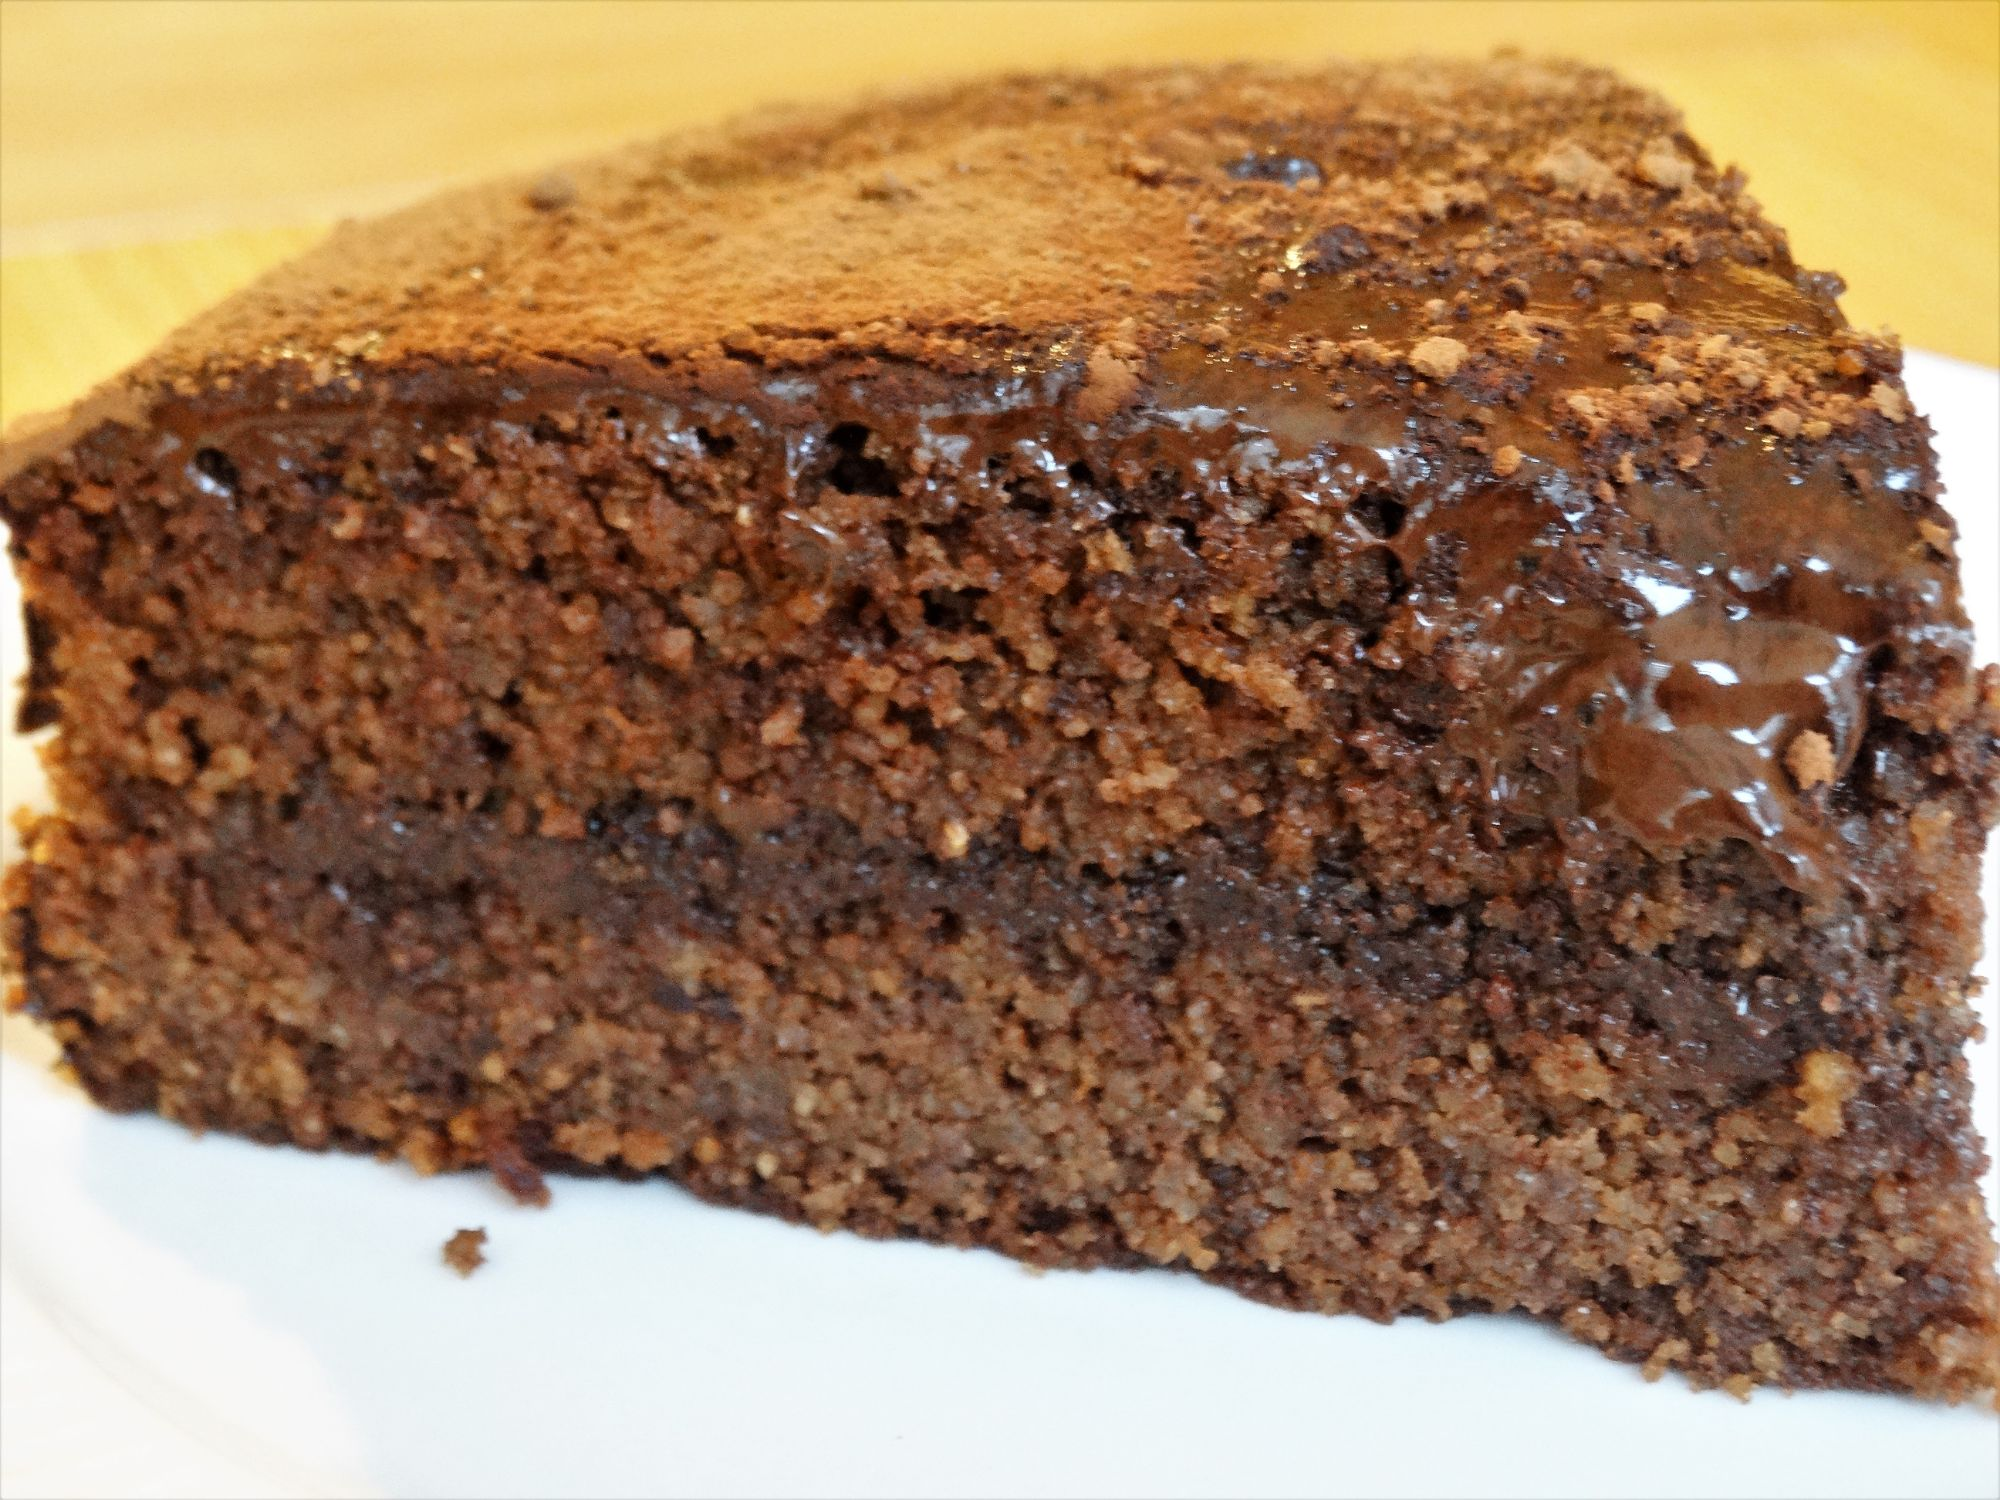 Chocolate Hazelnut and Polenta Cake